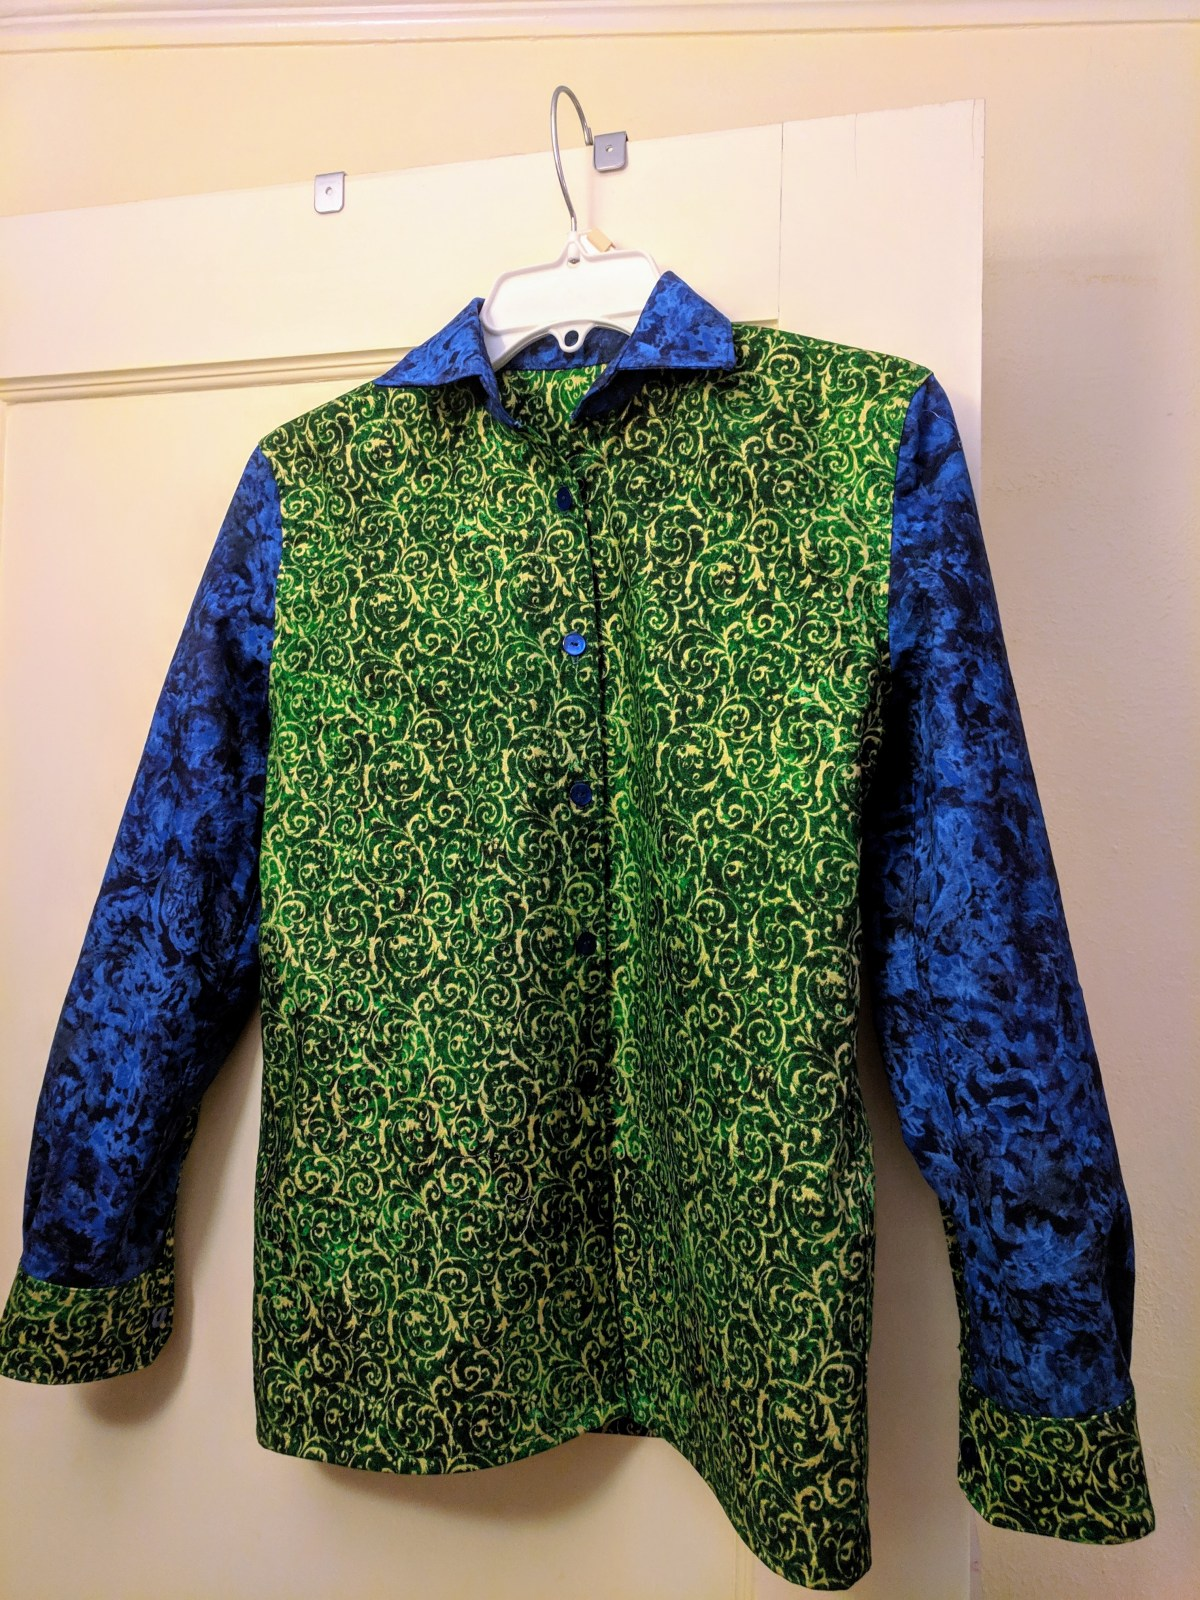 A button-up shirt hangs on a hanger. The shirt has a green body, blue arms, green cuffs, and a blue collar.